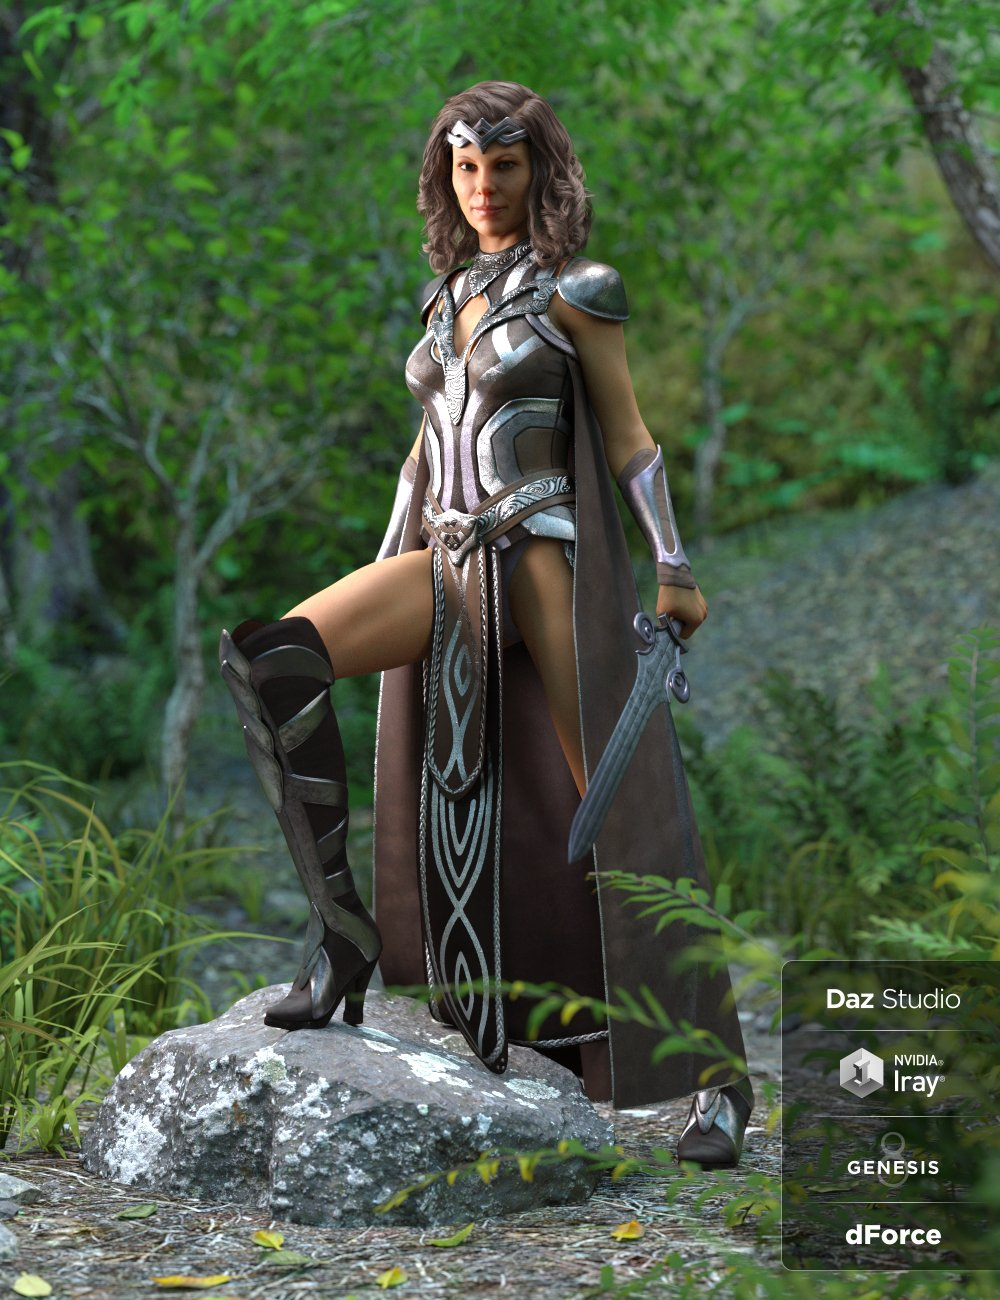 dForce Warrior Queen Outfit for Genesis 8 Female(s) by: LuthbellinaNikisatez, 3D Models by Daz 3D